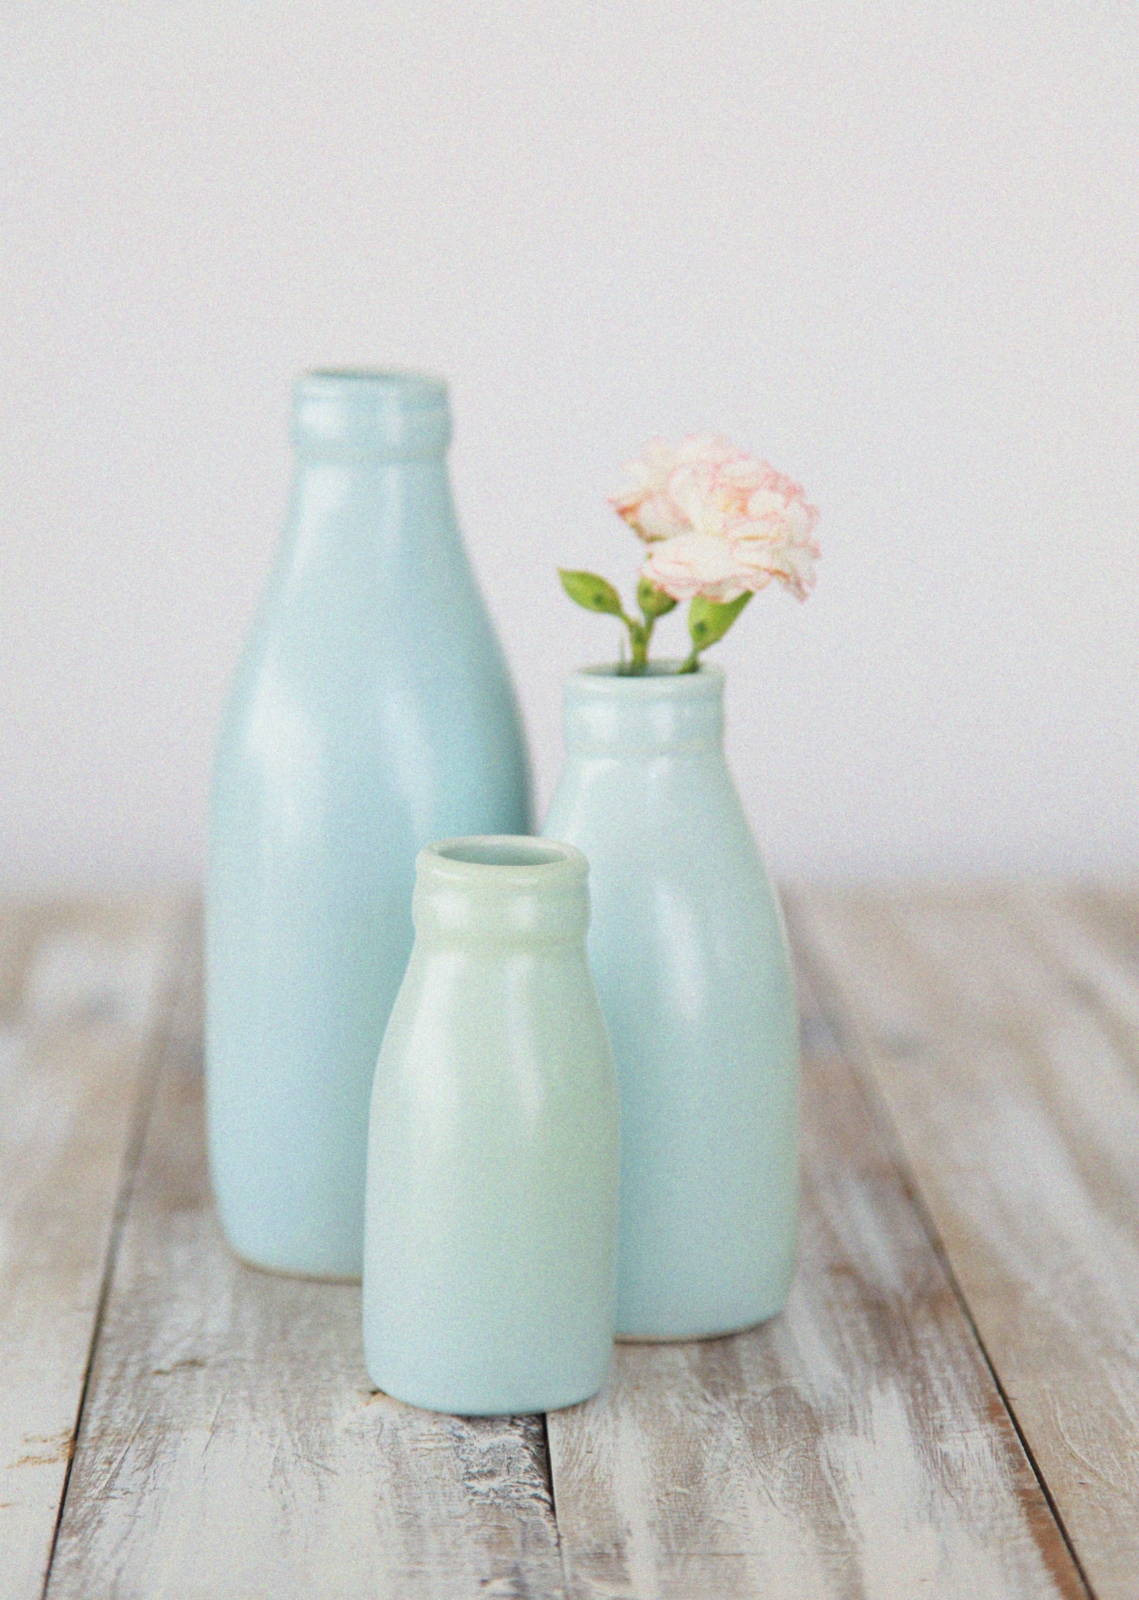 Duck Egg Blue Glass Bottles